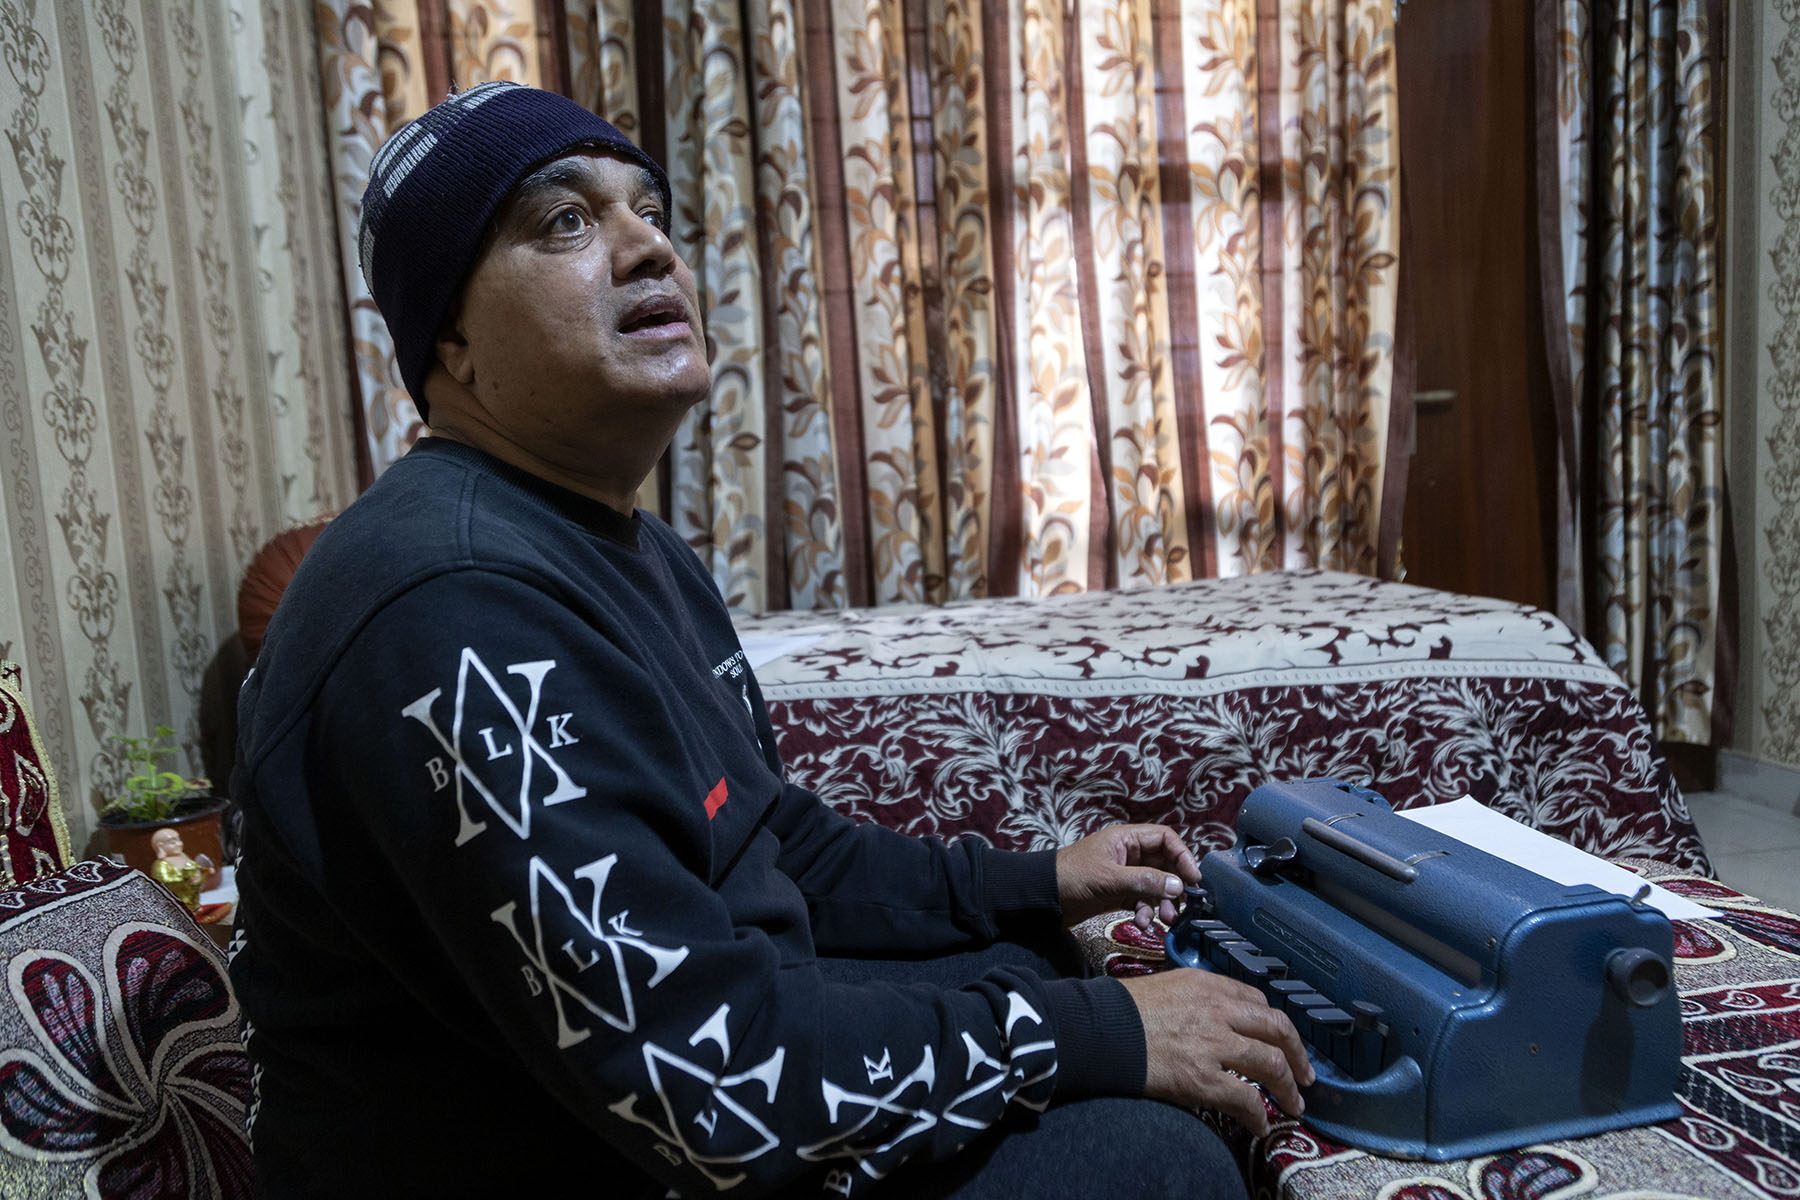 J.S. Jayara in a navy blue sweatshirt and matching woollen cap looking upwards as he sits with his fingers on the keys of a blue Braille typewriter